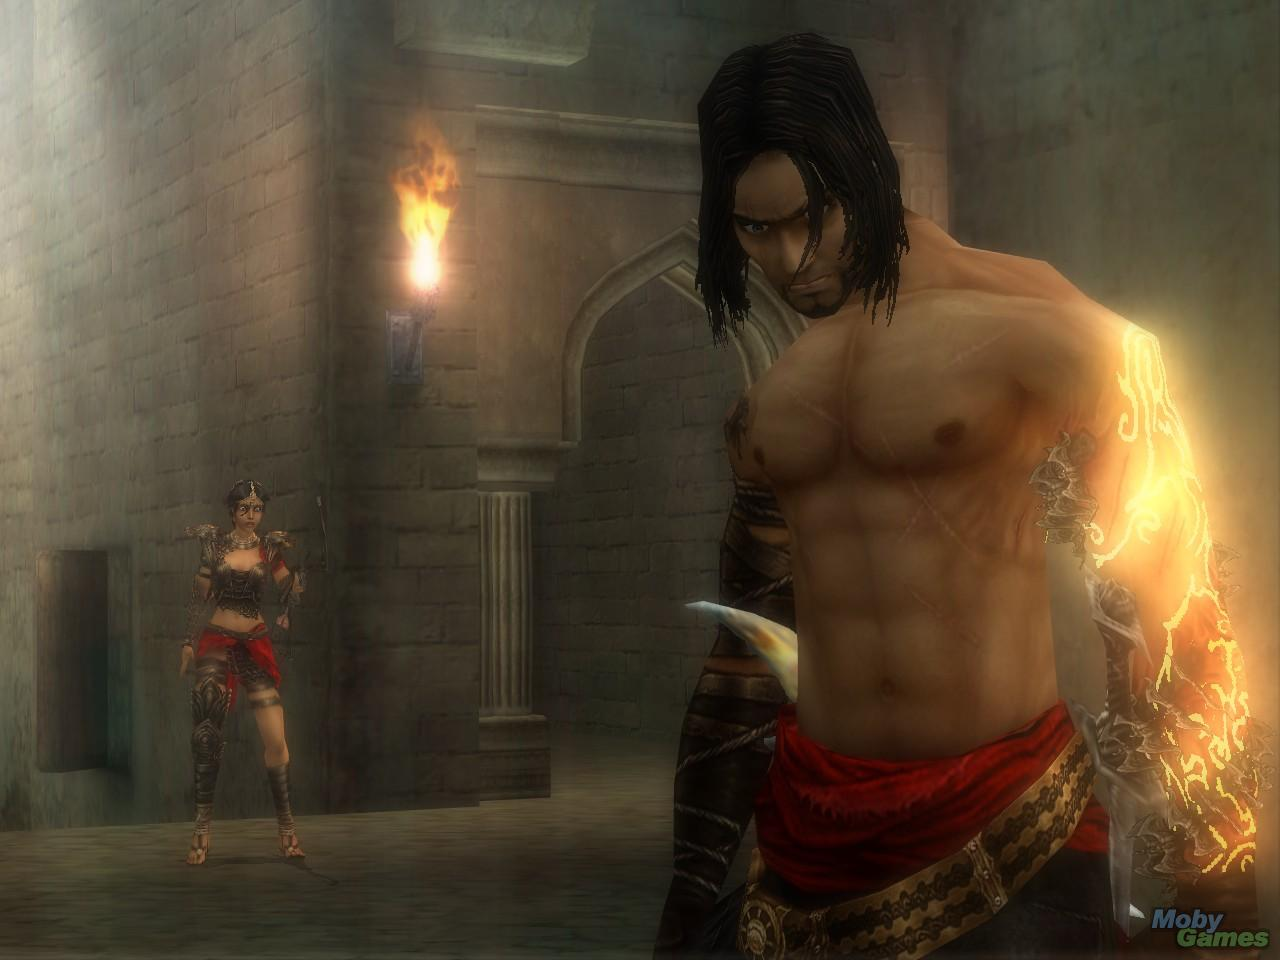 Prince of persia porn stories exploited pictures